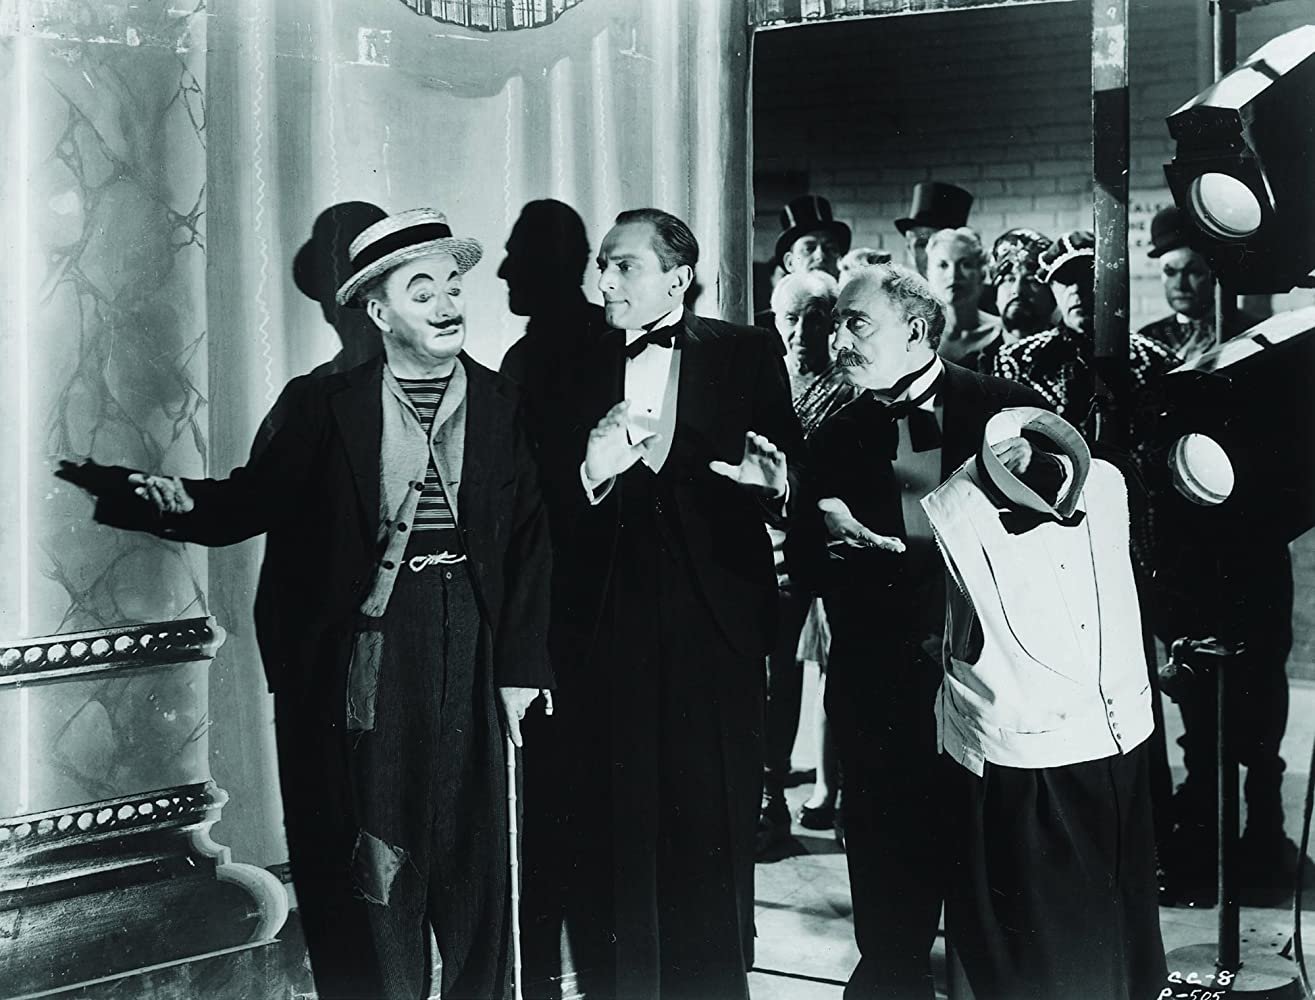 Buster Keaton and Charles Chaplin in Limelight (1952)